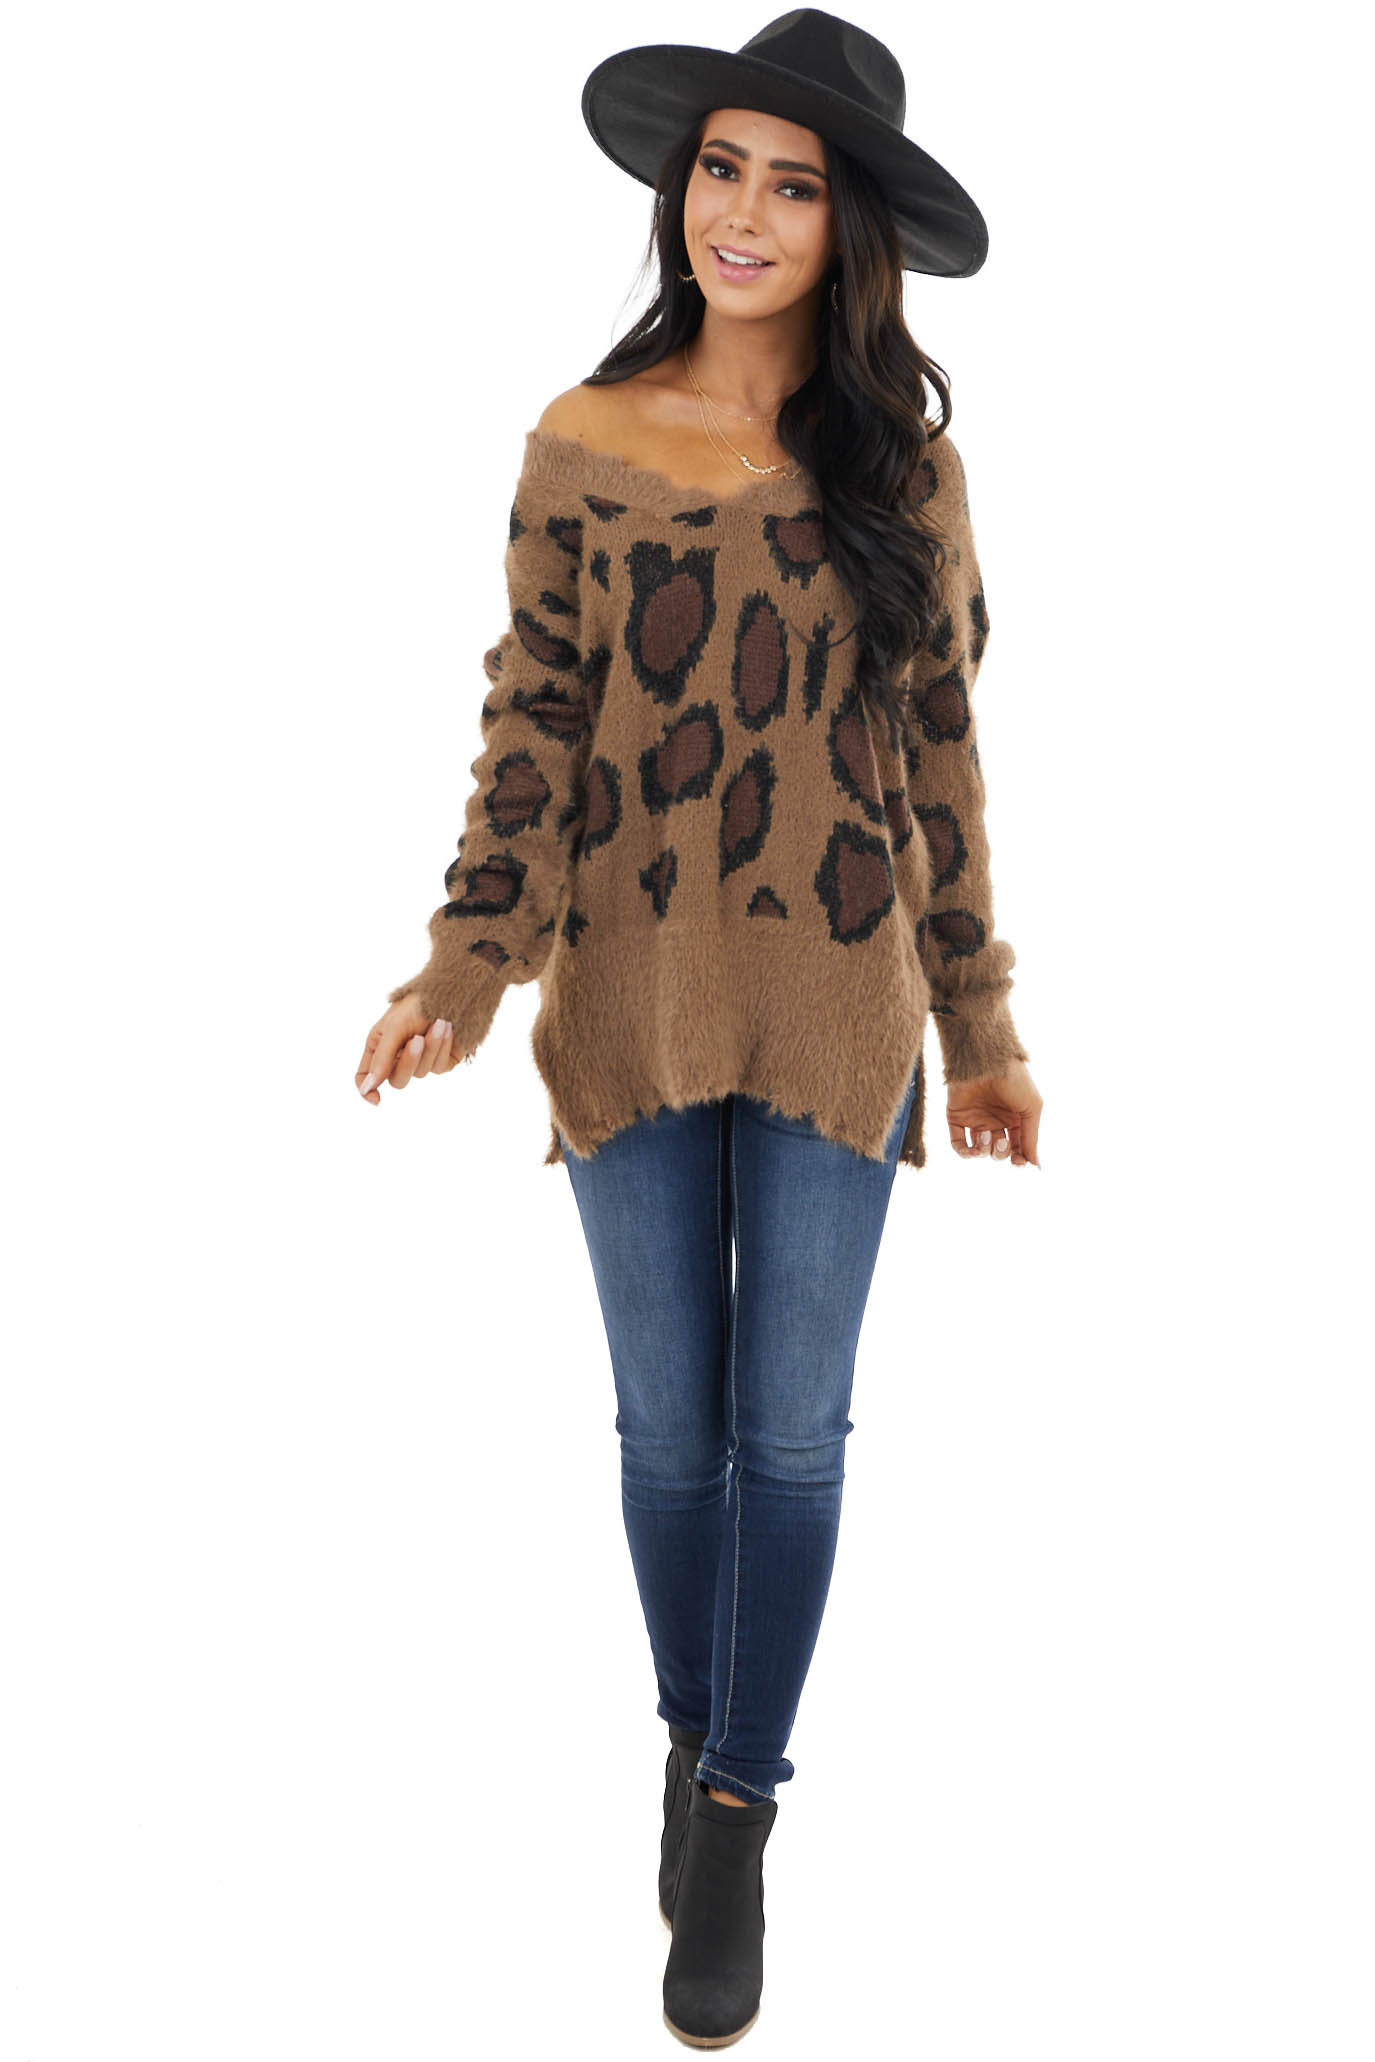 Camel Leopard Print Fuzzy Long Sleeve Sweater with V Neck